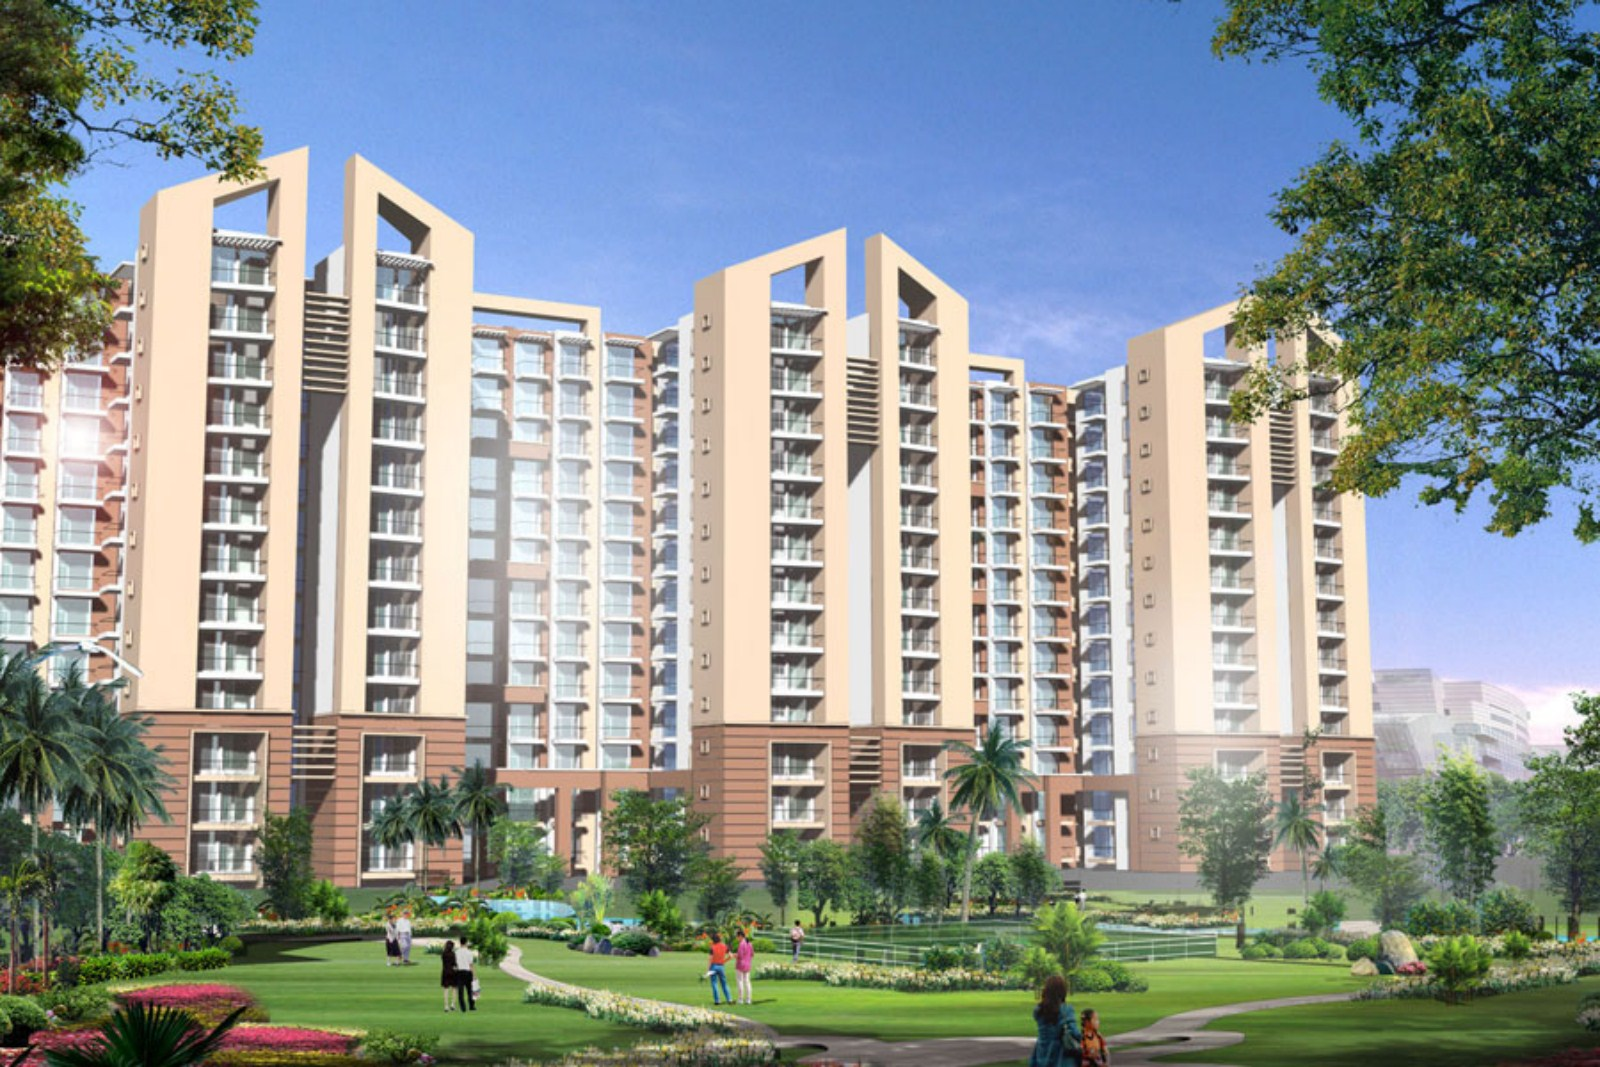 Group Housing for DDA Dwarka 1